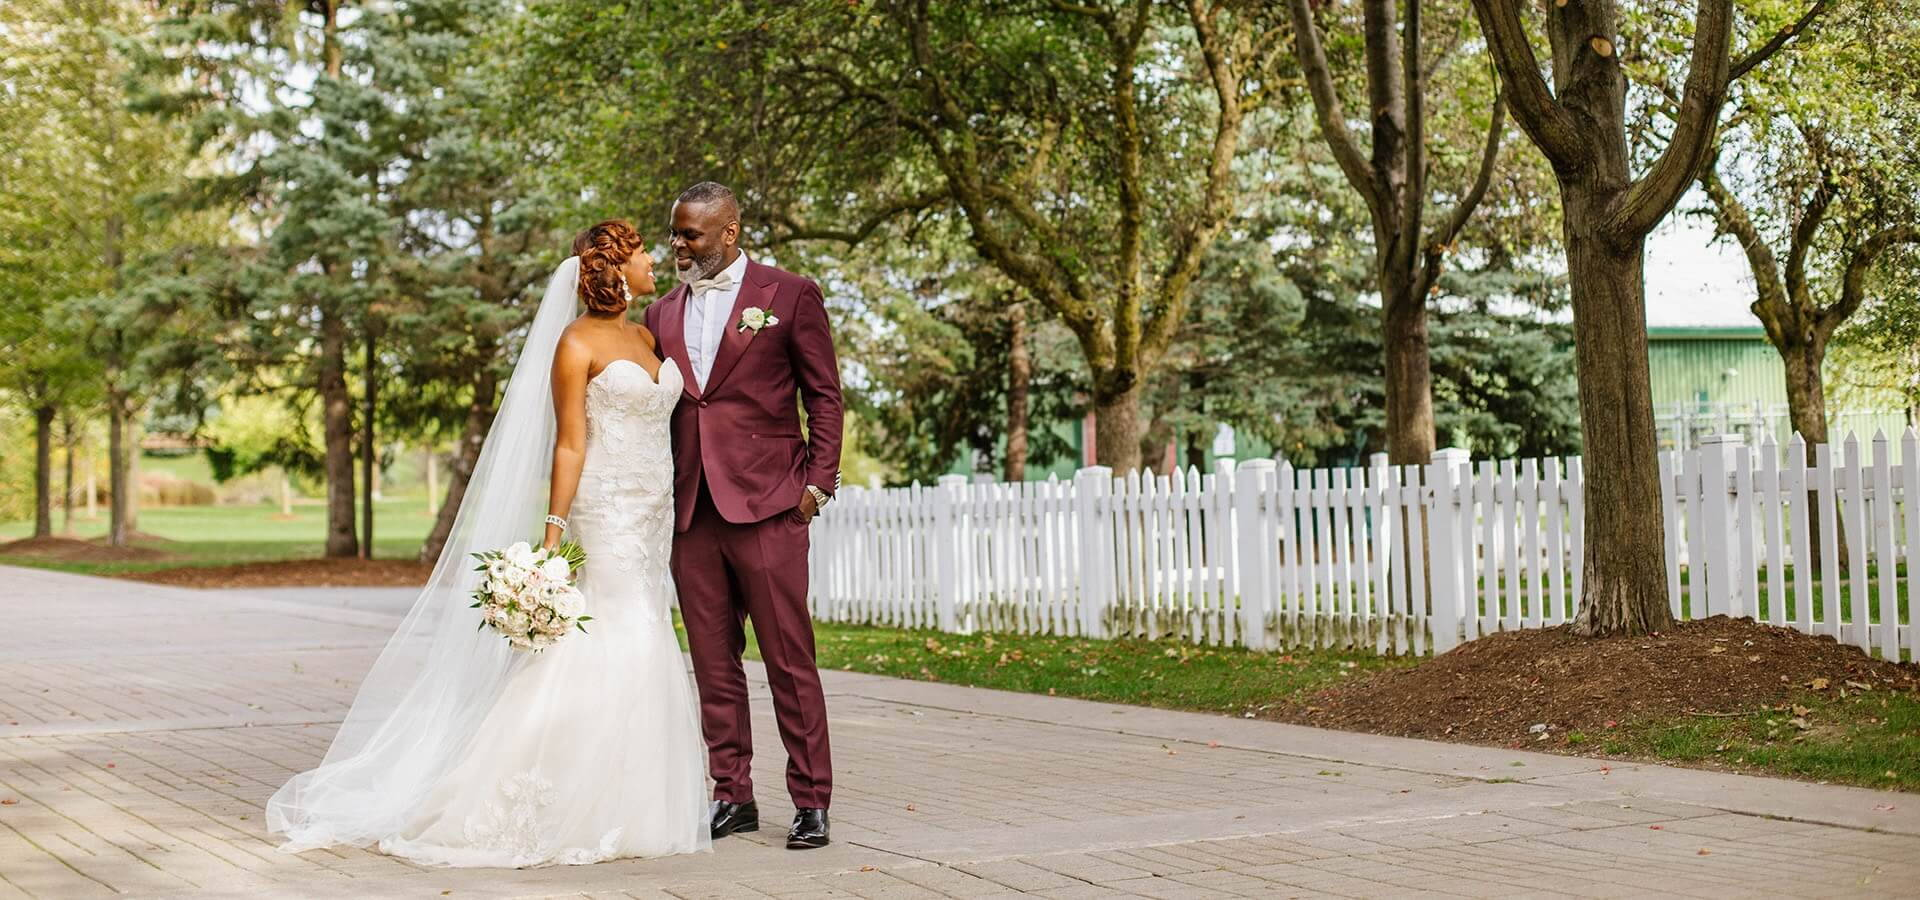 Hero image for Ayanna and Mark's Joyous Wedding at Hazelton Manor